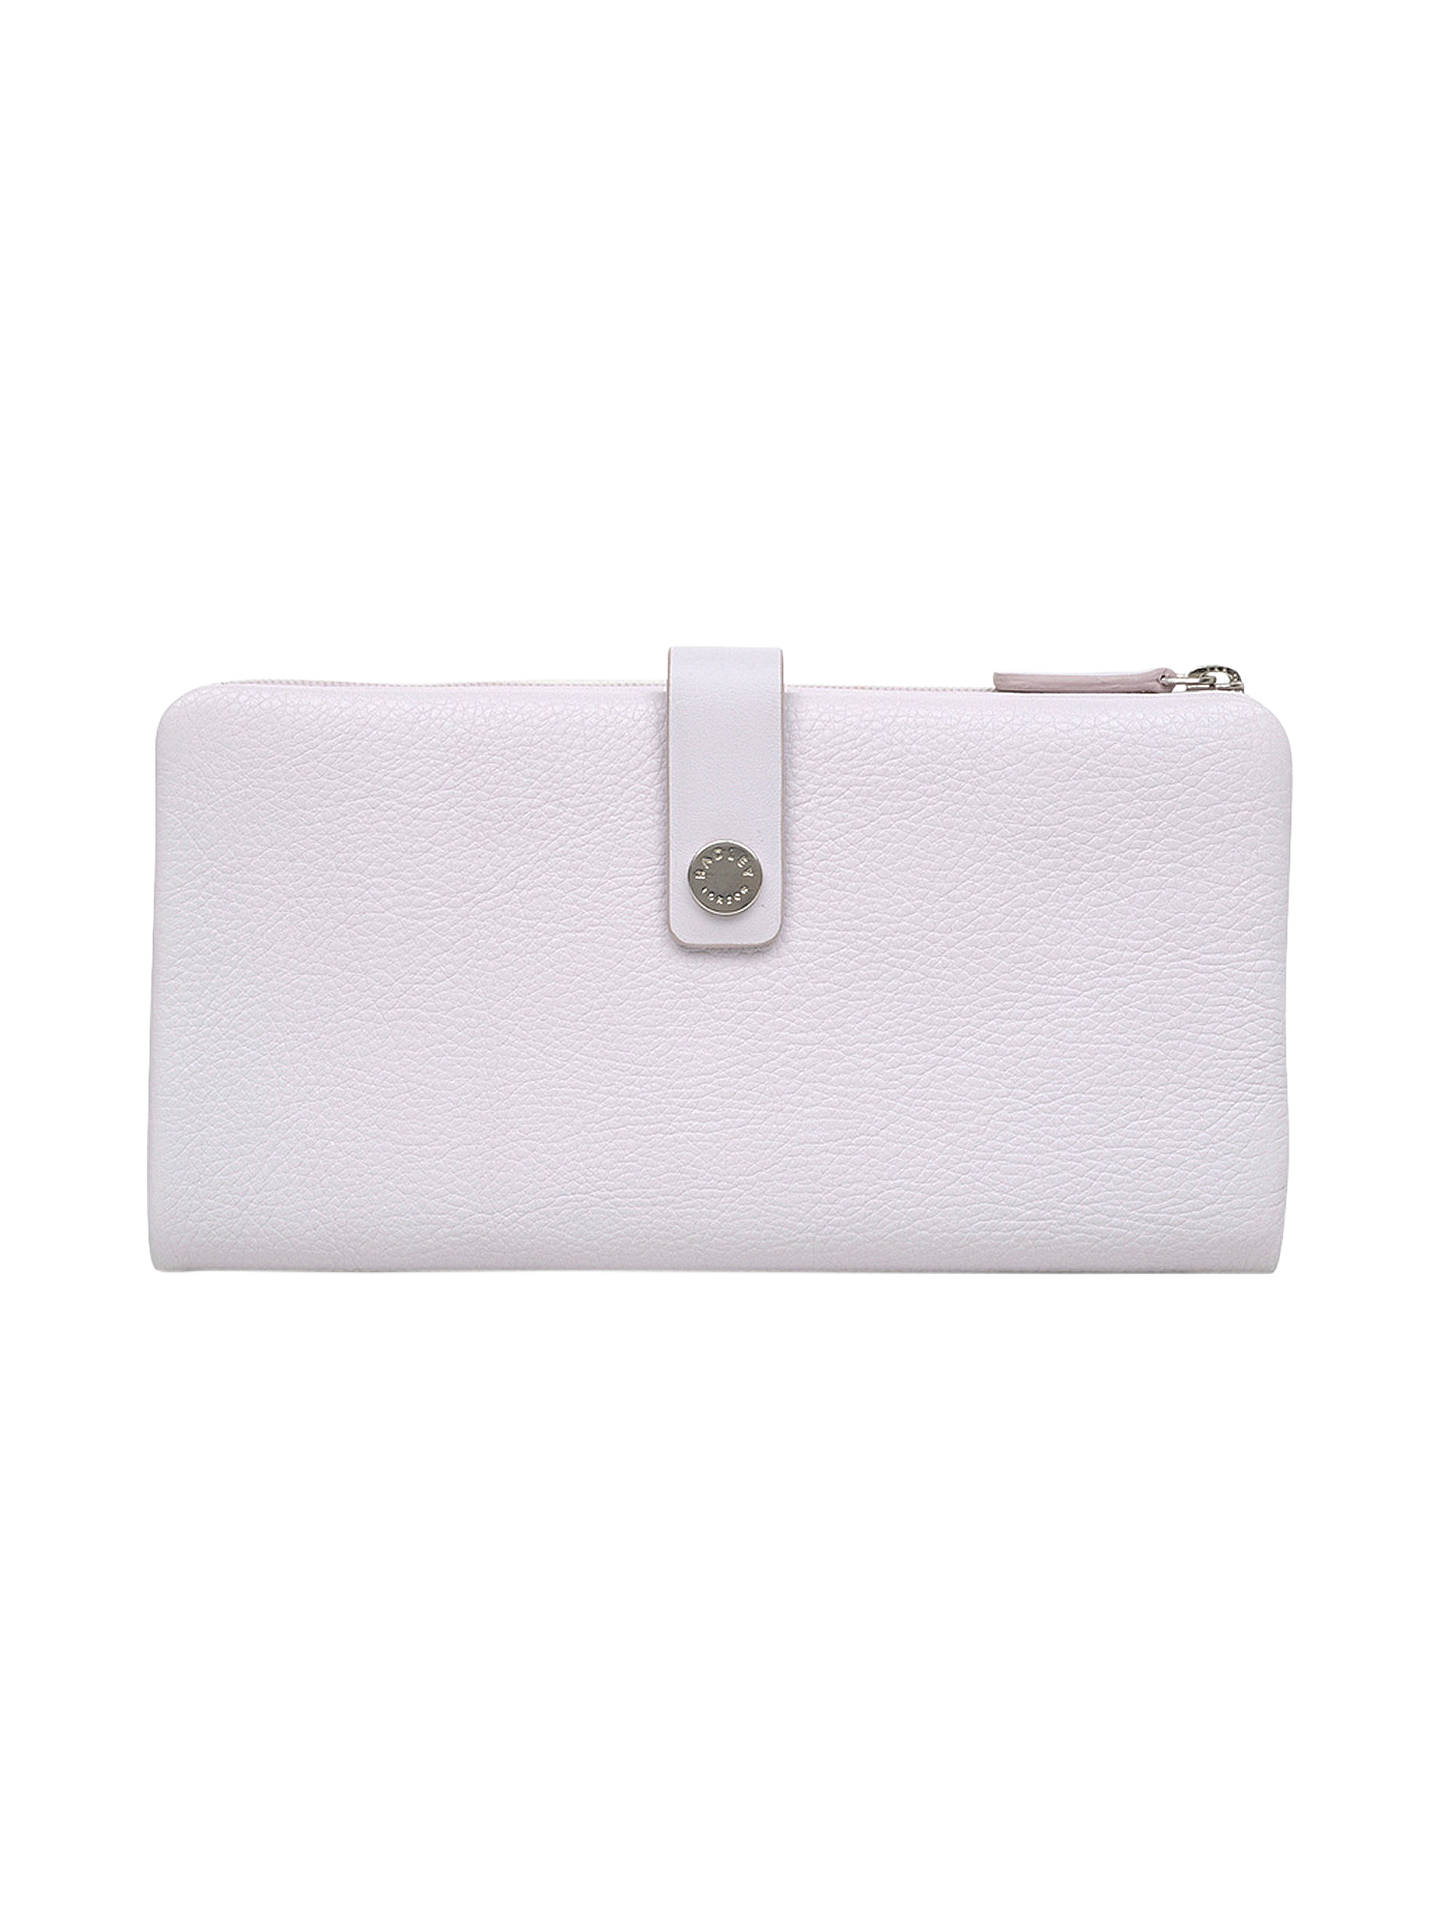 BuyRadley Larks Wood Leather Large Folded Matinee Purse, Pale Lilac Online at johnlewis.com